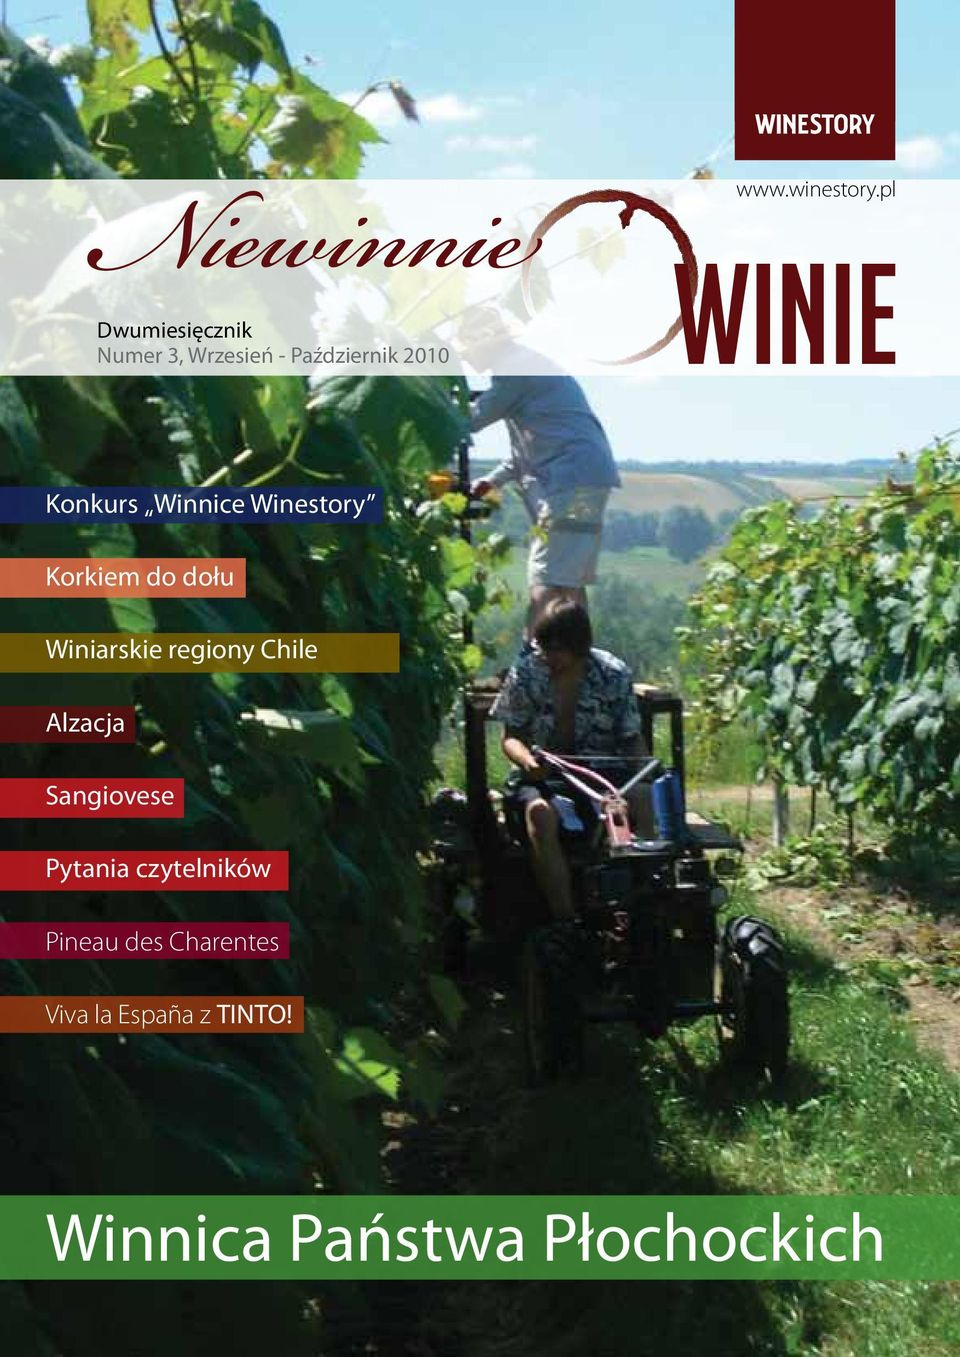 Konkurs Winnice Winestory Korkiem do dołu Winiarskie regiony